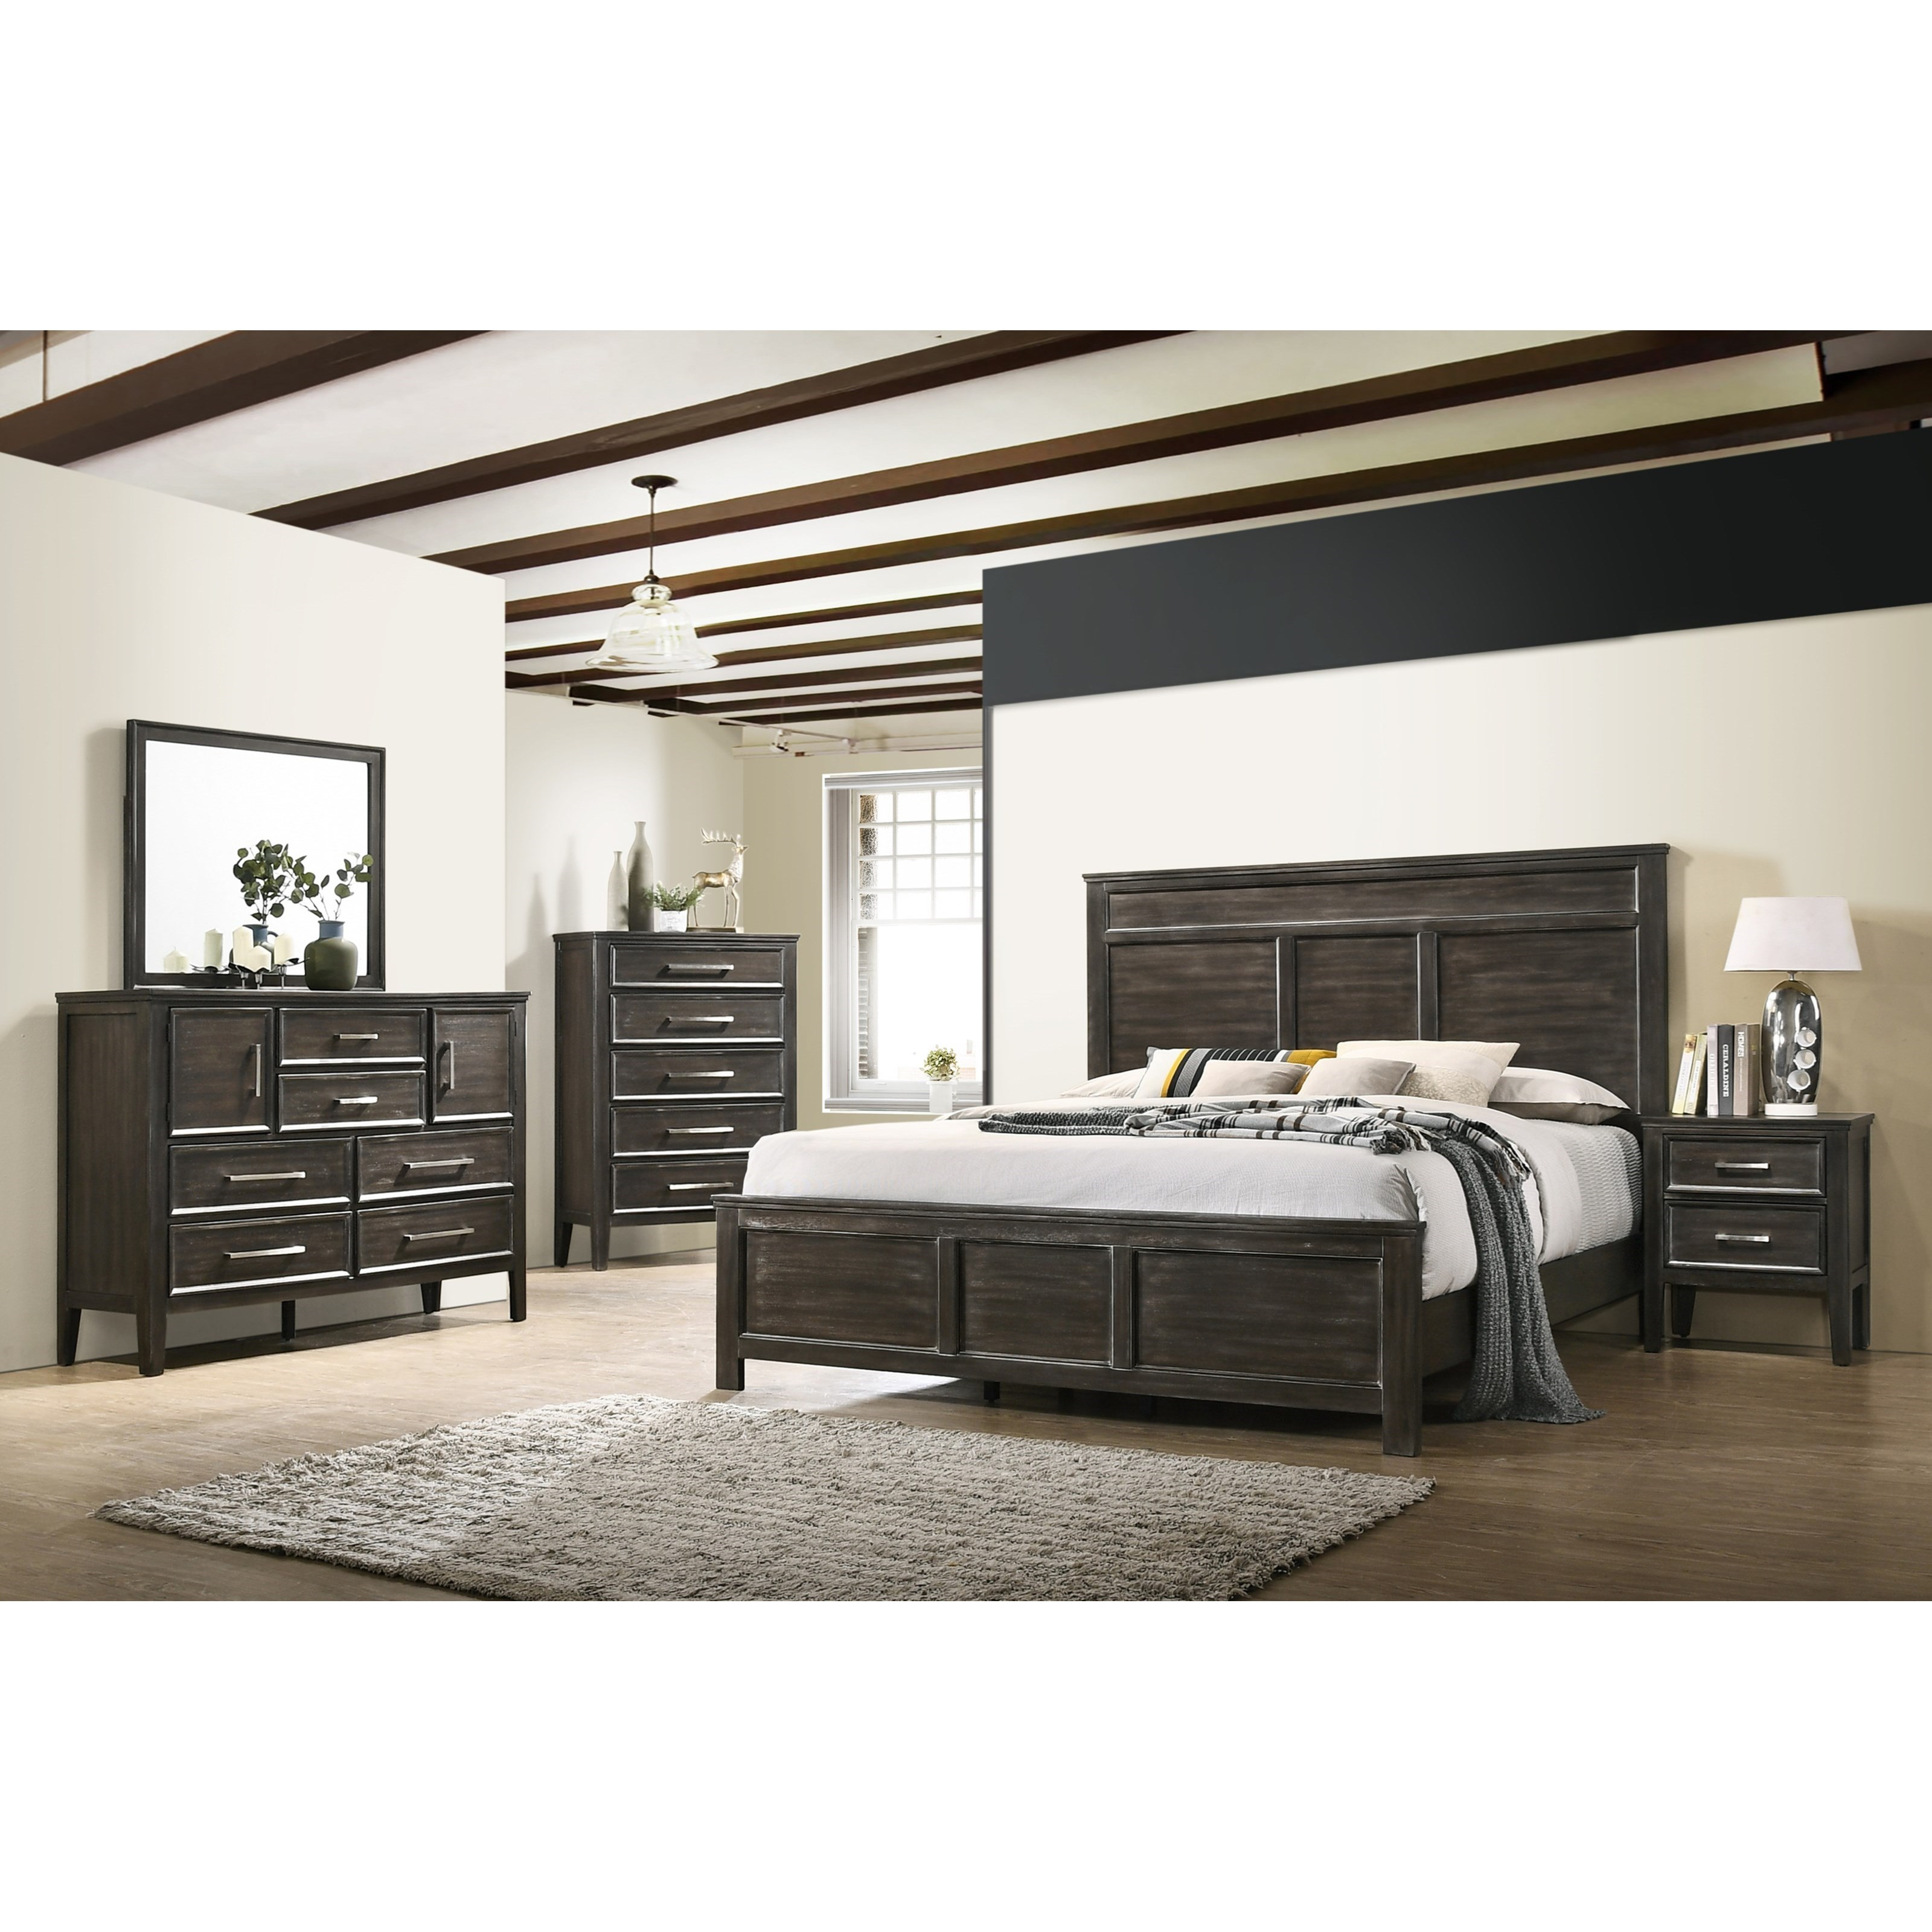 Andover Queen Bedroom Group by New Classic at Beds N Stuff